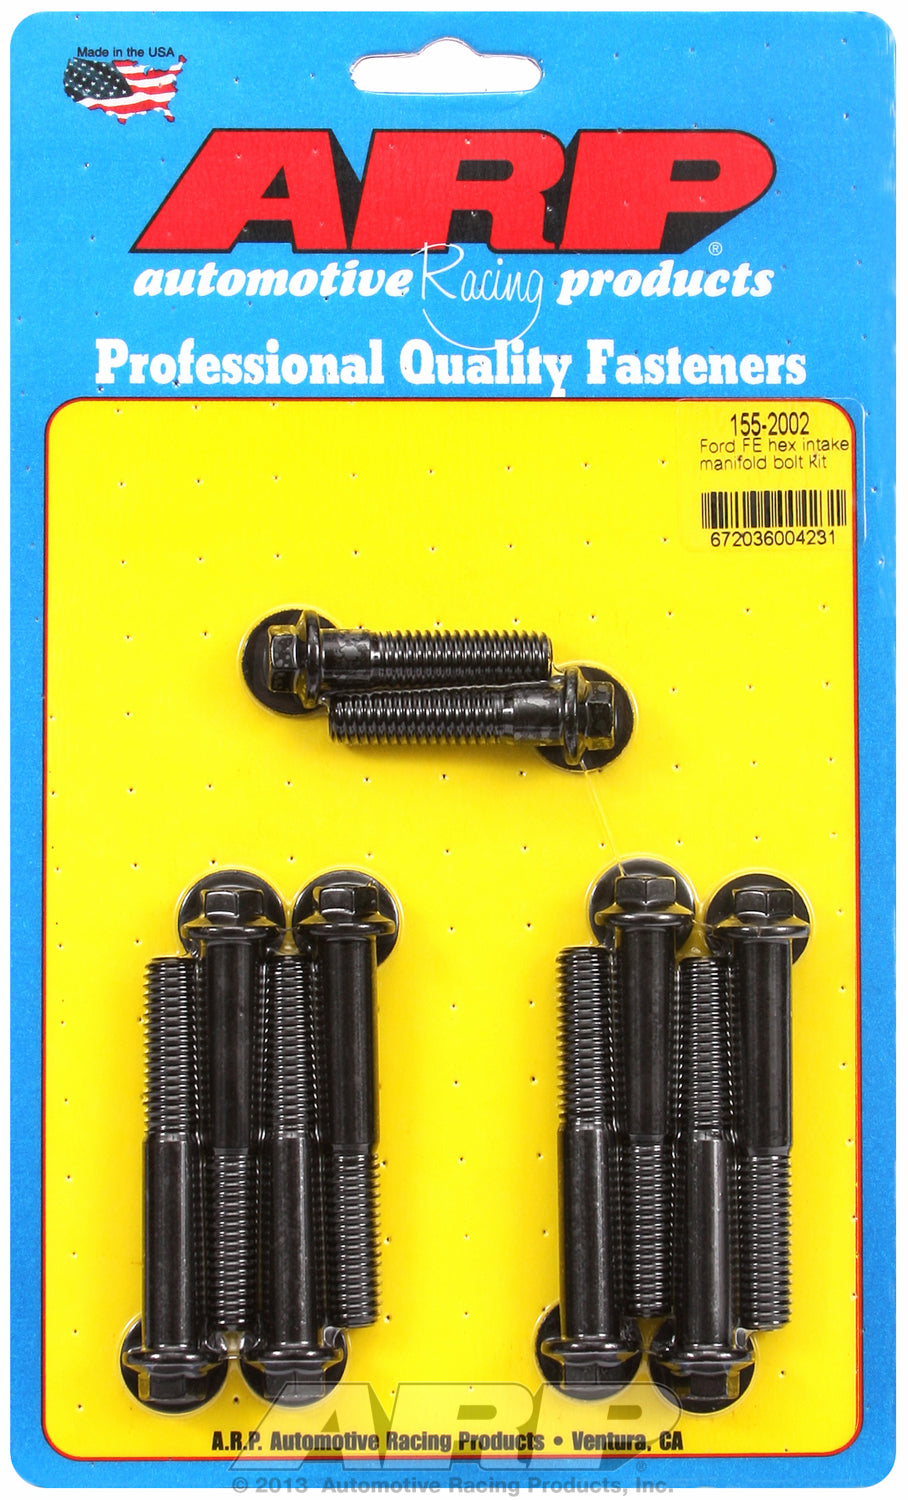 Hex Head Black Oxide Intake Manifold Bolts for Ford 390-428 cid FE Series